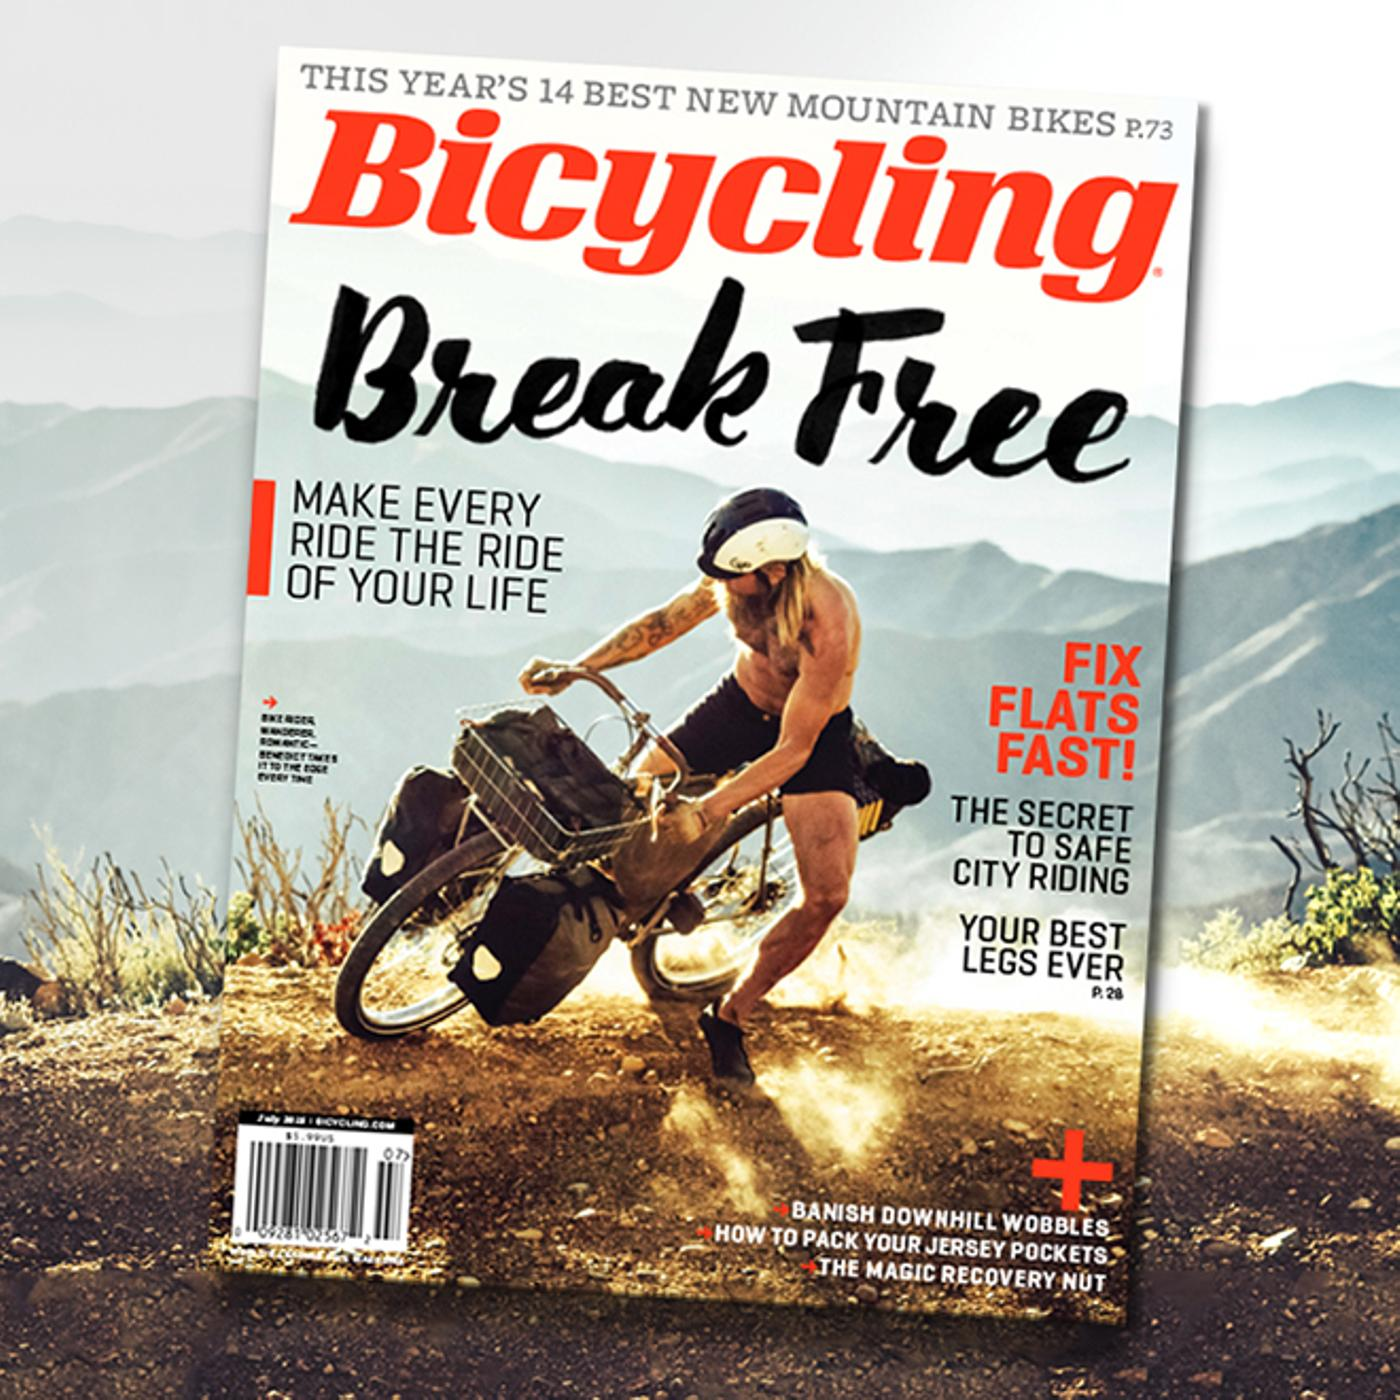 Bicycling Magazine Has Been Paying Attention